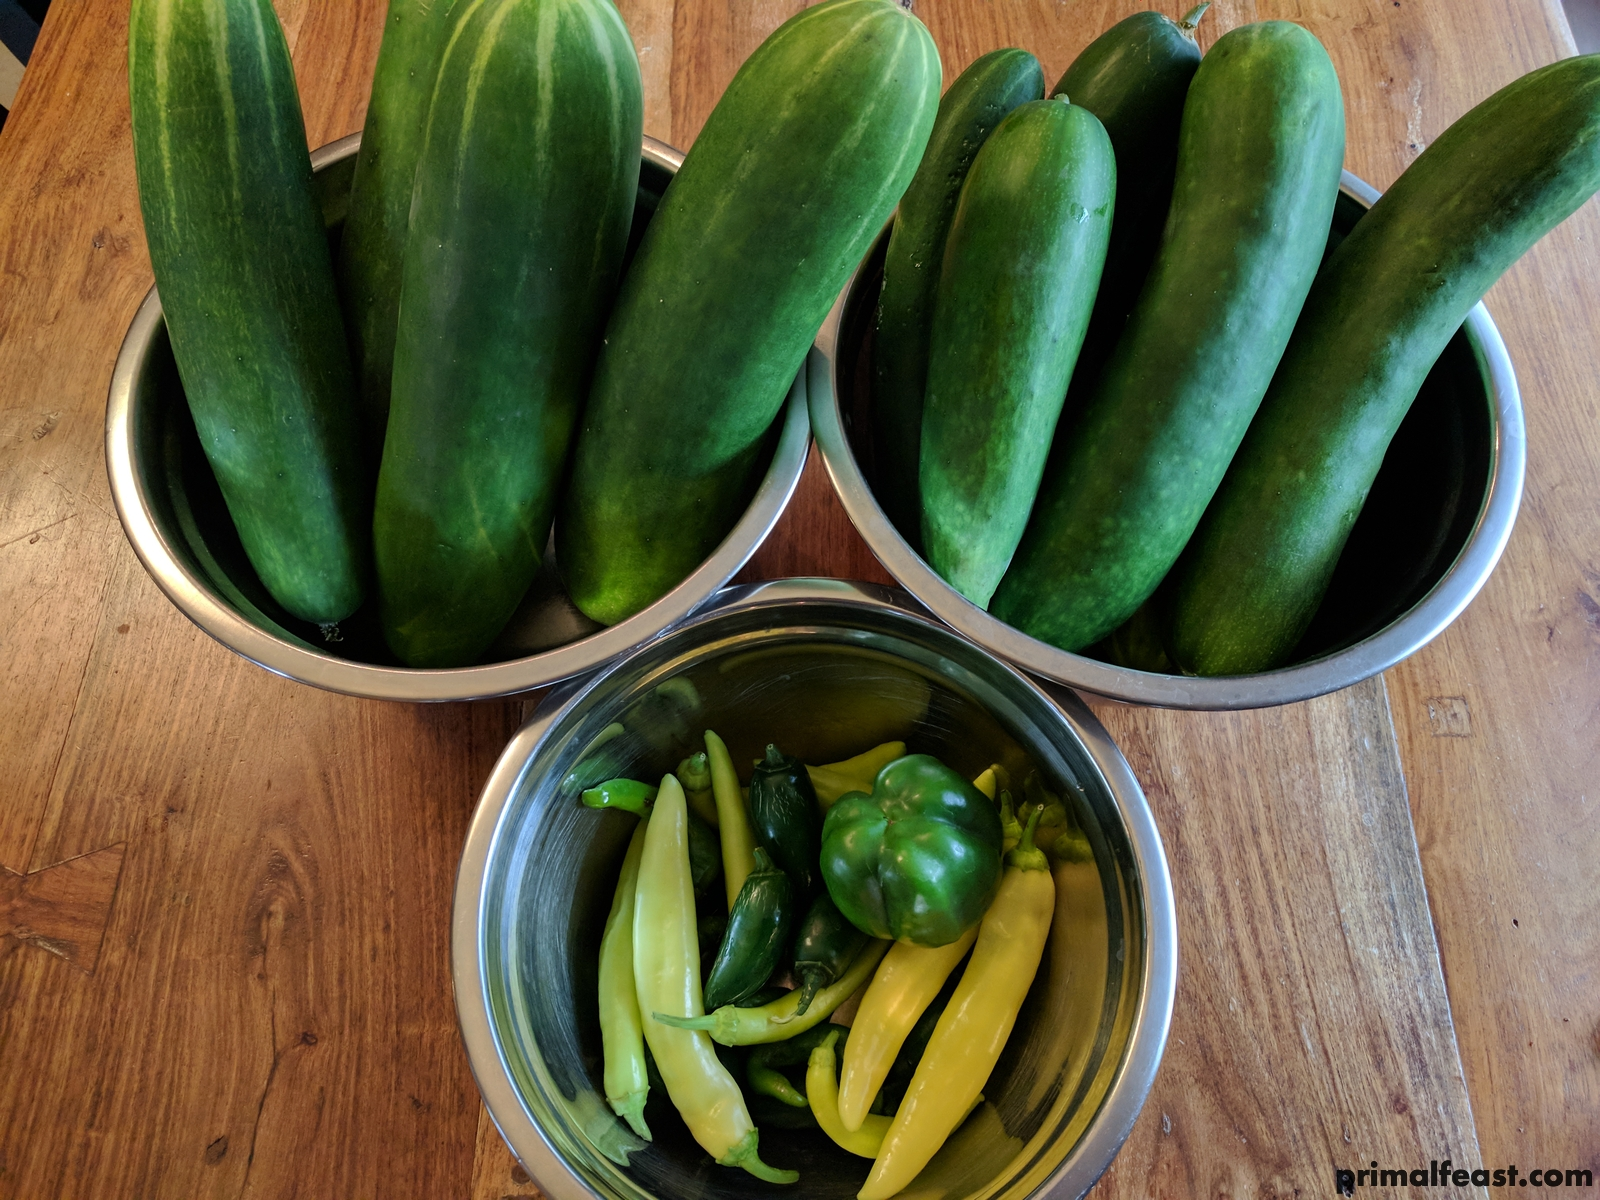 2017 0721 cucumbers and peppers.jpg